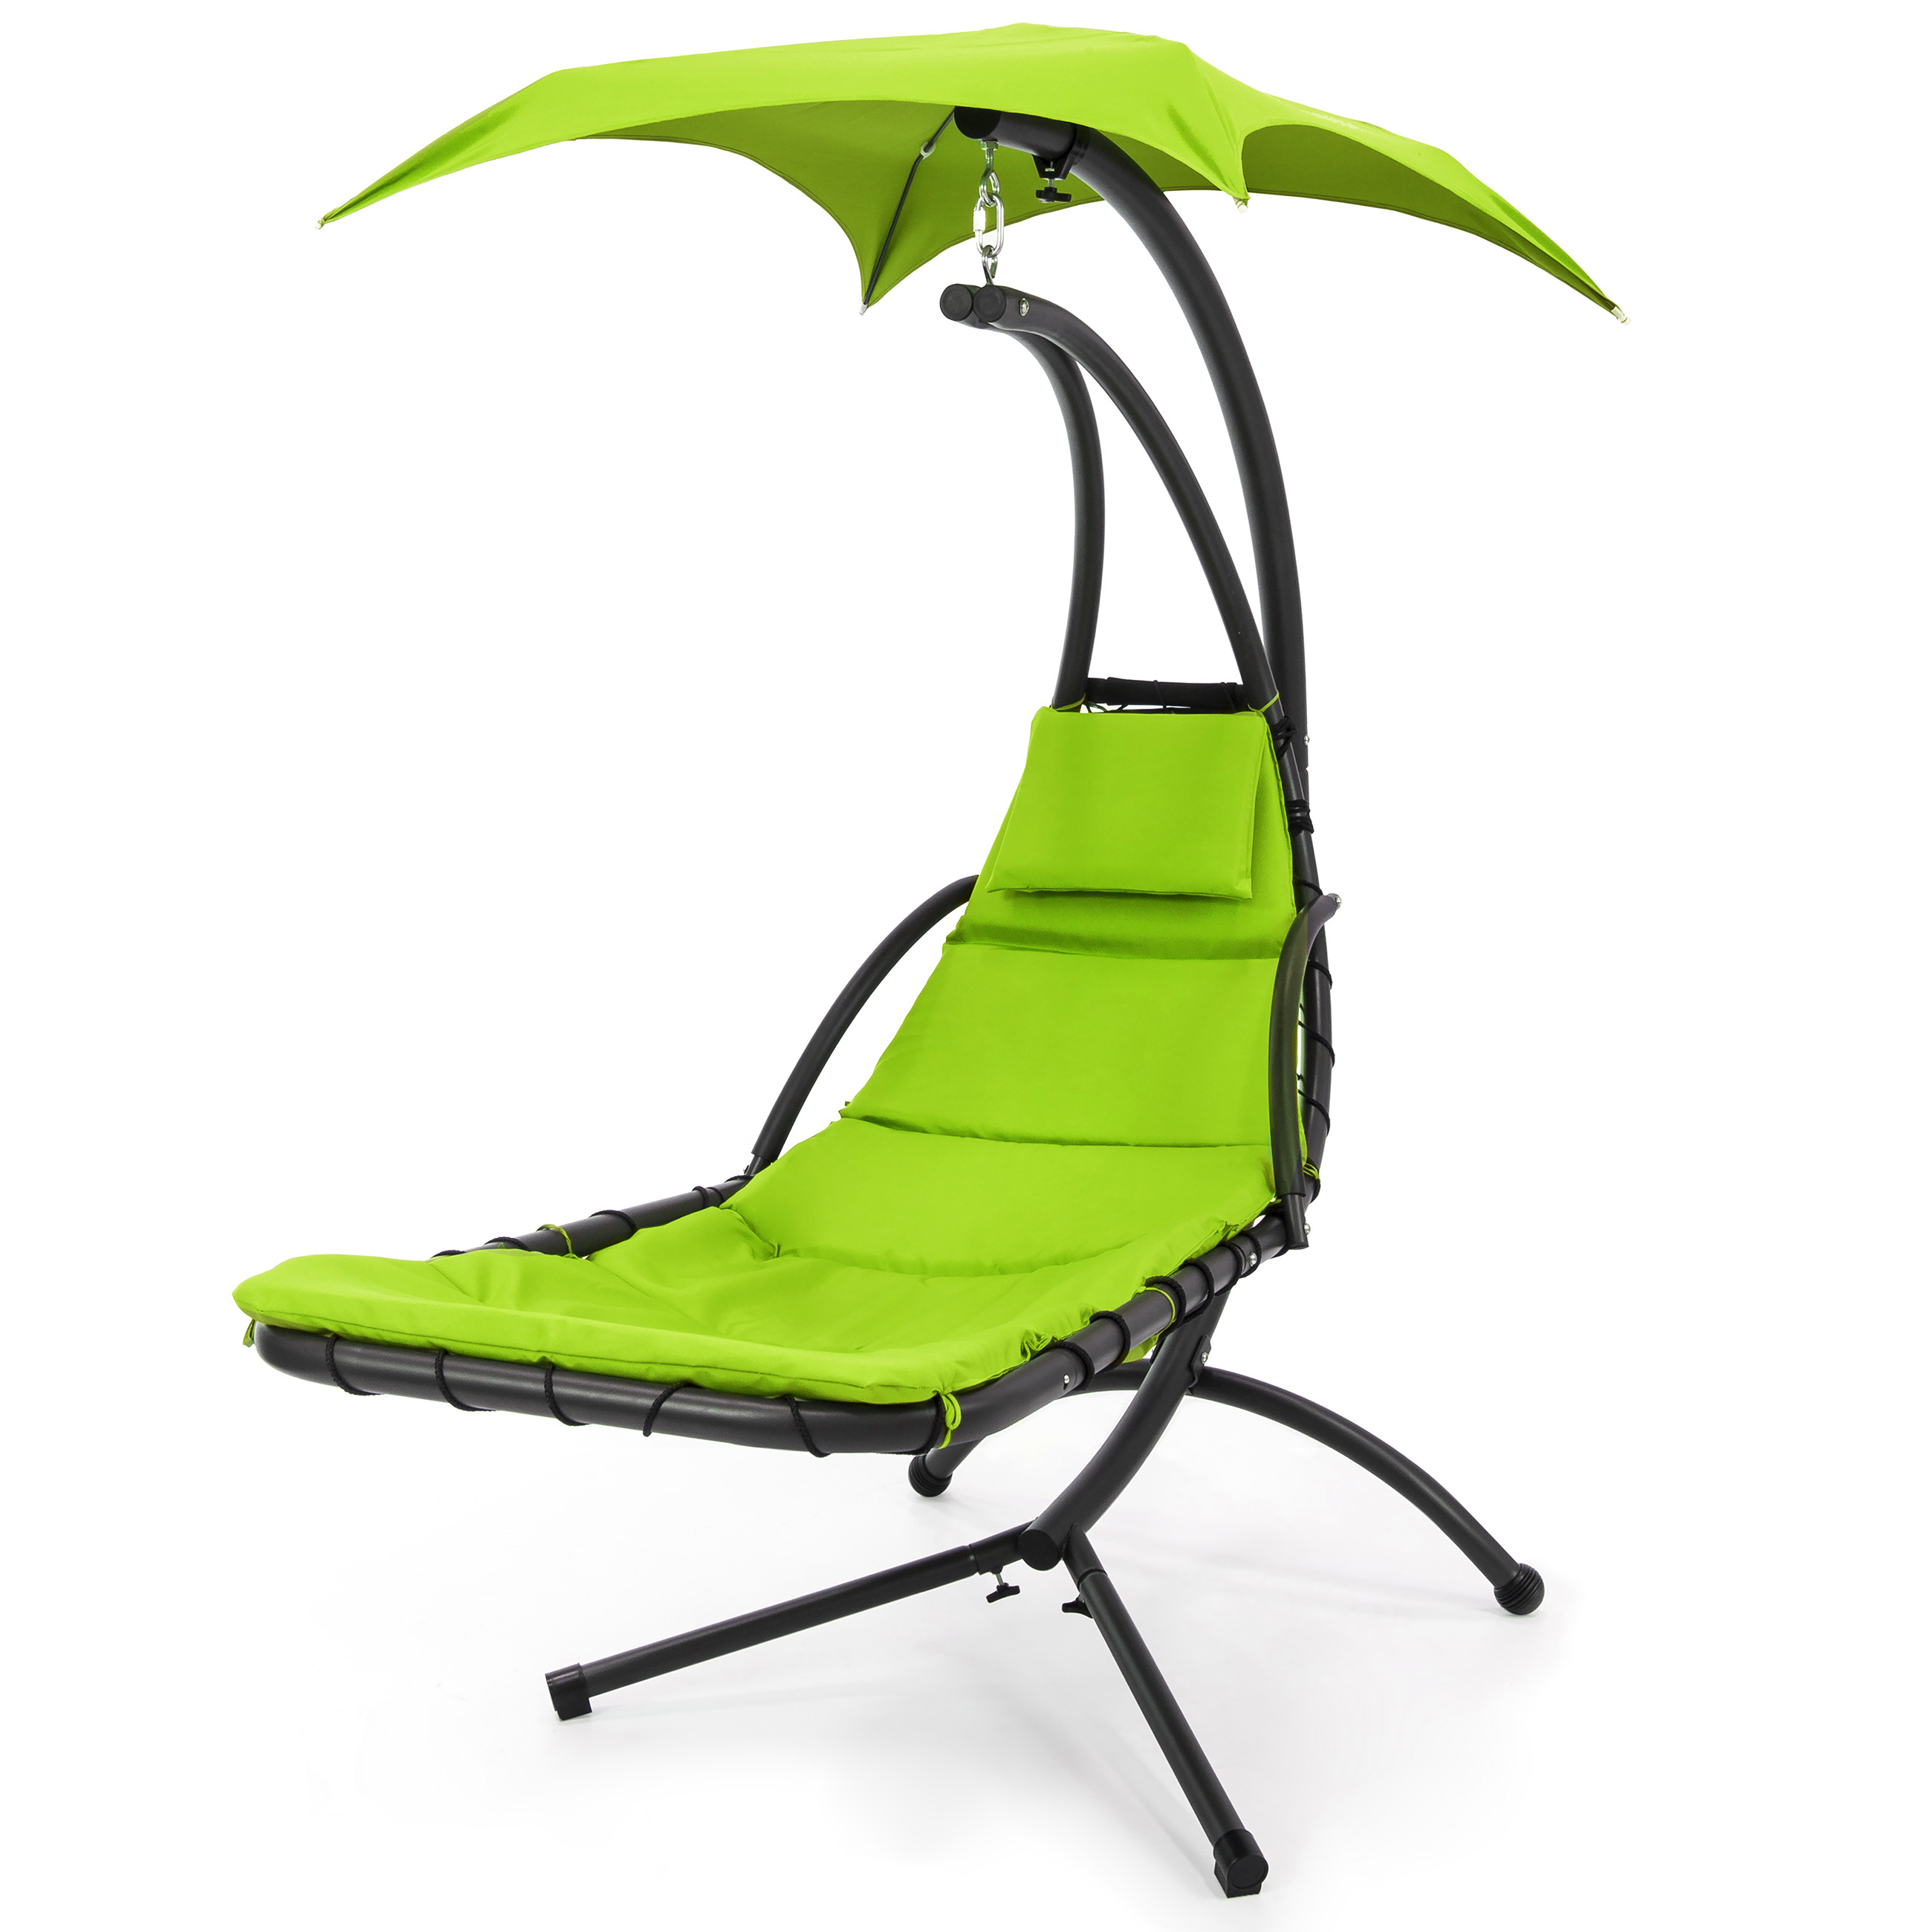 hanging chair swing desk diy best choice products outdoor curved chaise lounge w pillow stand canopy green walmart com